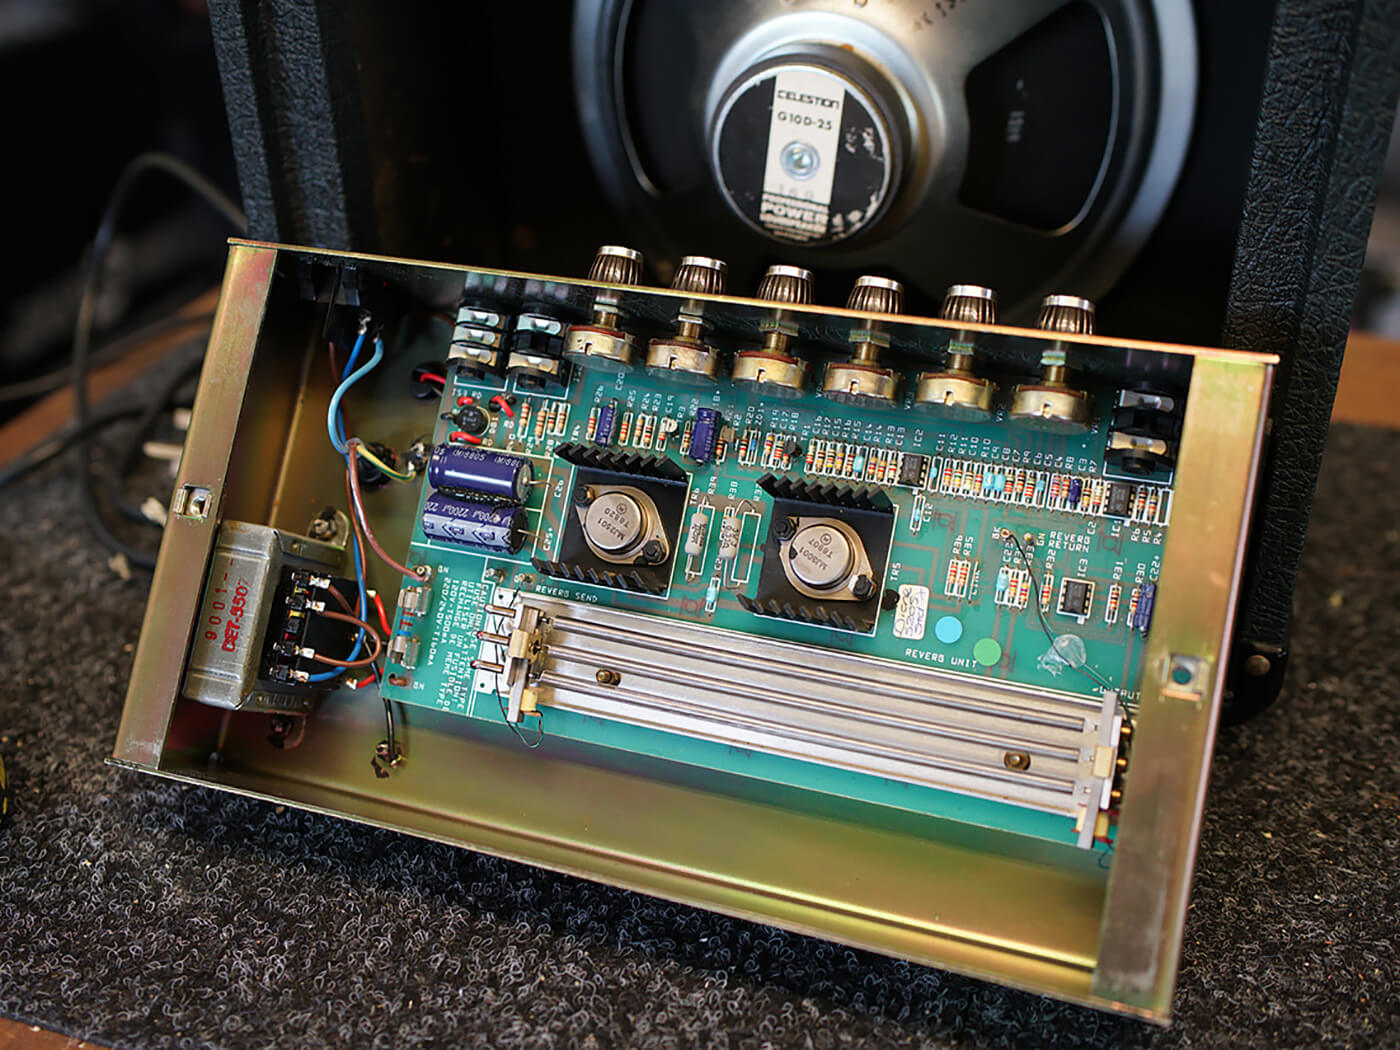 Amplifier Faq  Can You Recommend An Affordable Solid